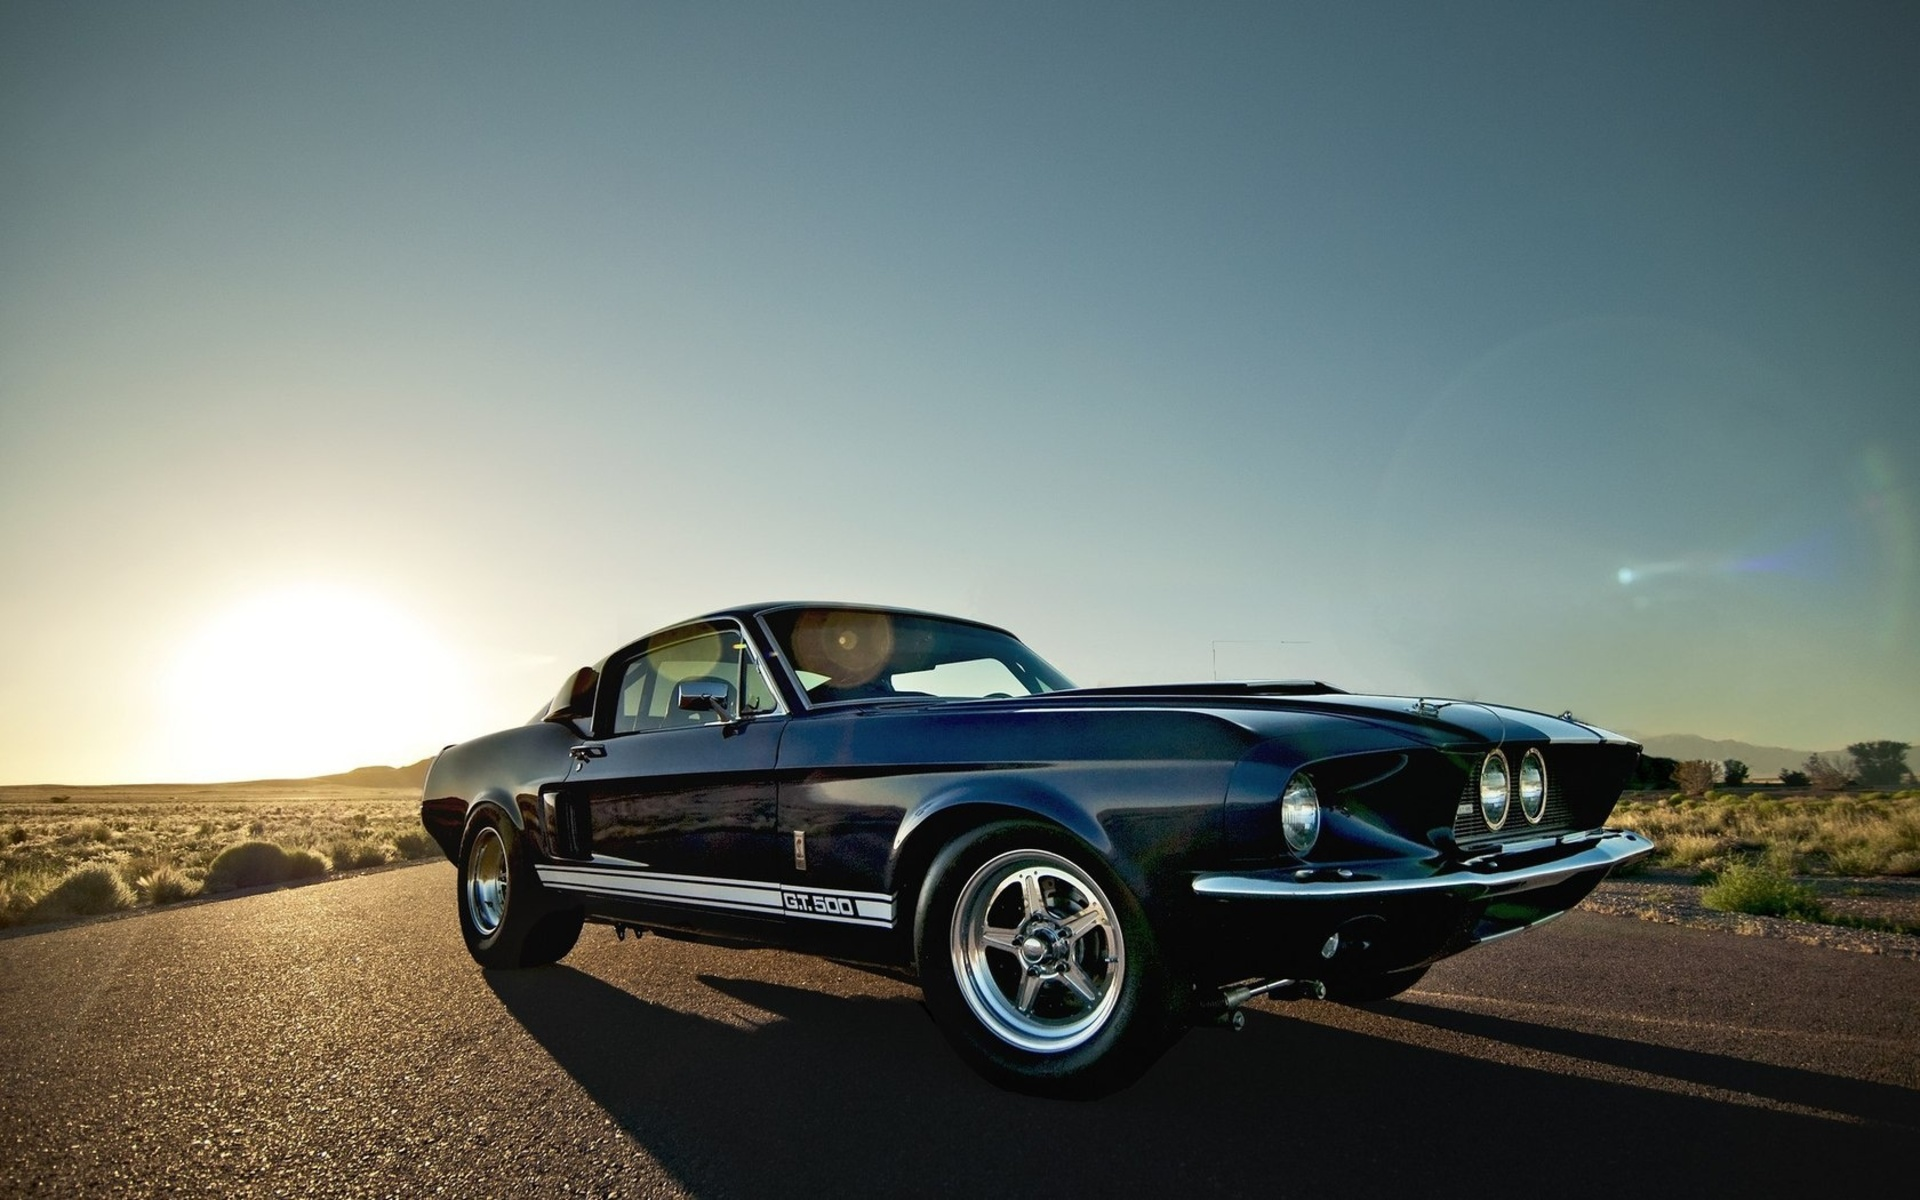 Scroll down to catch the thunder and fasten your seat belts to take a tremendous virtual ride of superb cars. Awesome Classic Car Wallpapers 4k Ultra Hd For Laptop Ford Mustang 1967 Wallpaper Hd 1920x1200 Wallpaper Teahub Io